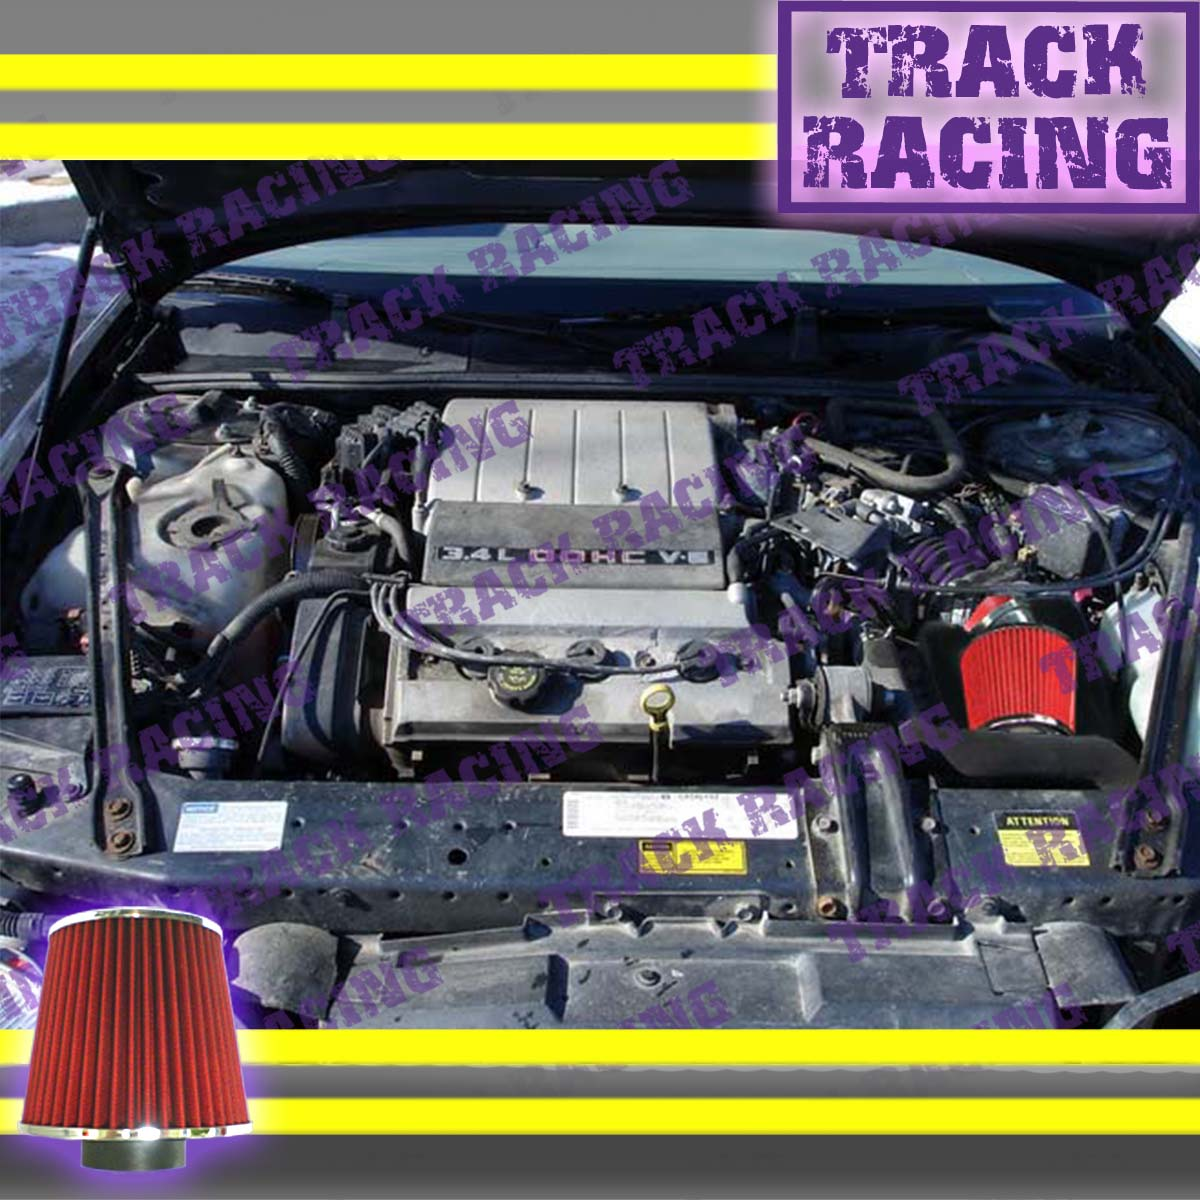 hight resolution of details about 96 97 chevy lumina oldsmobile cutlass supreme 3 4l v6 lq1 z34 air intake red